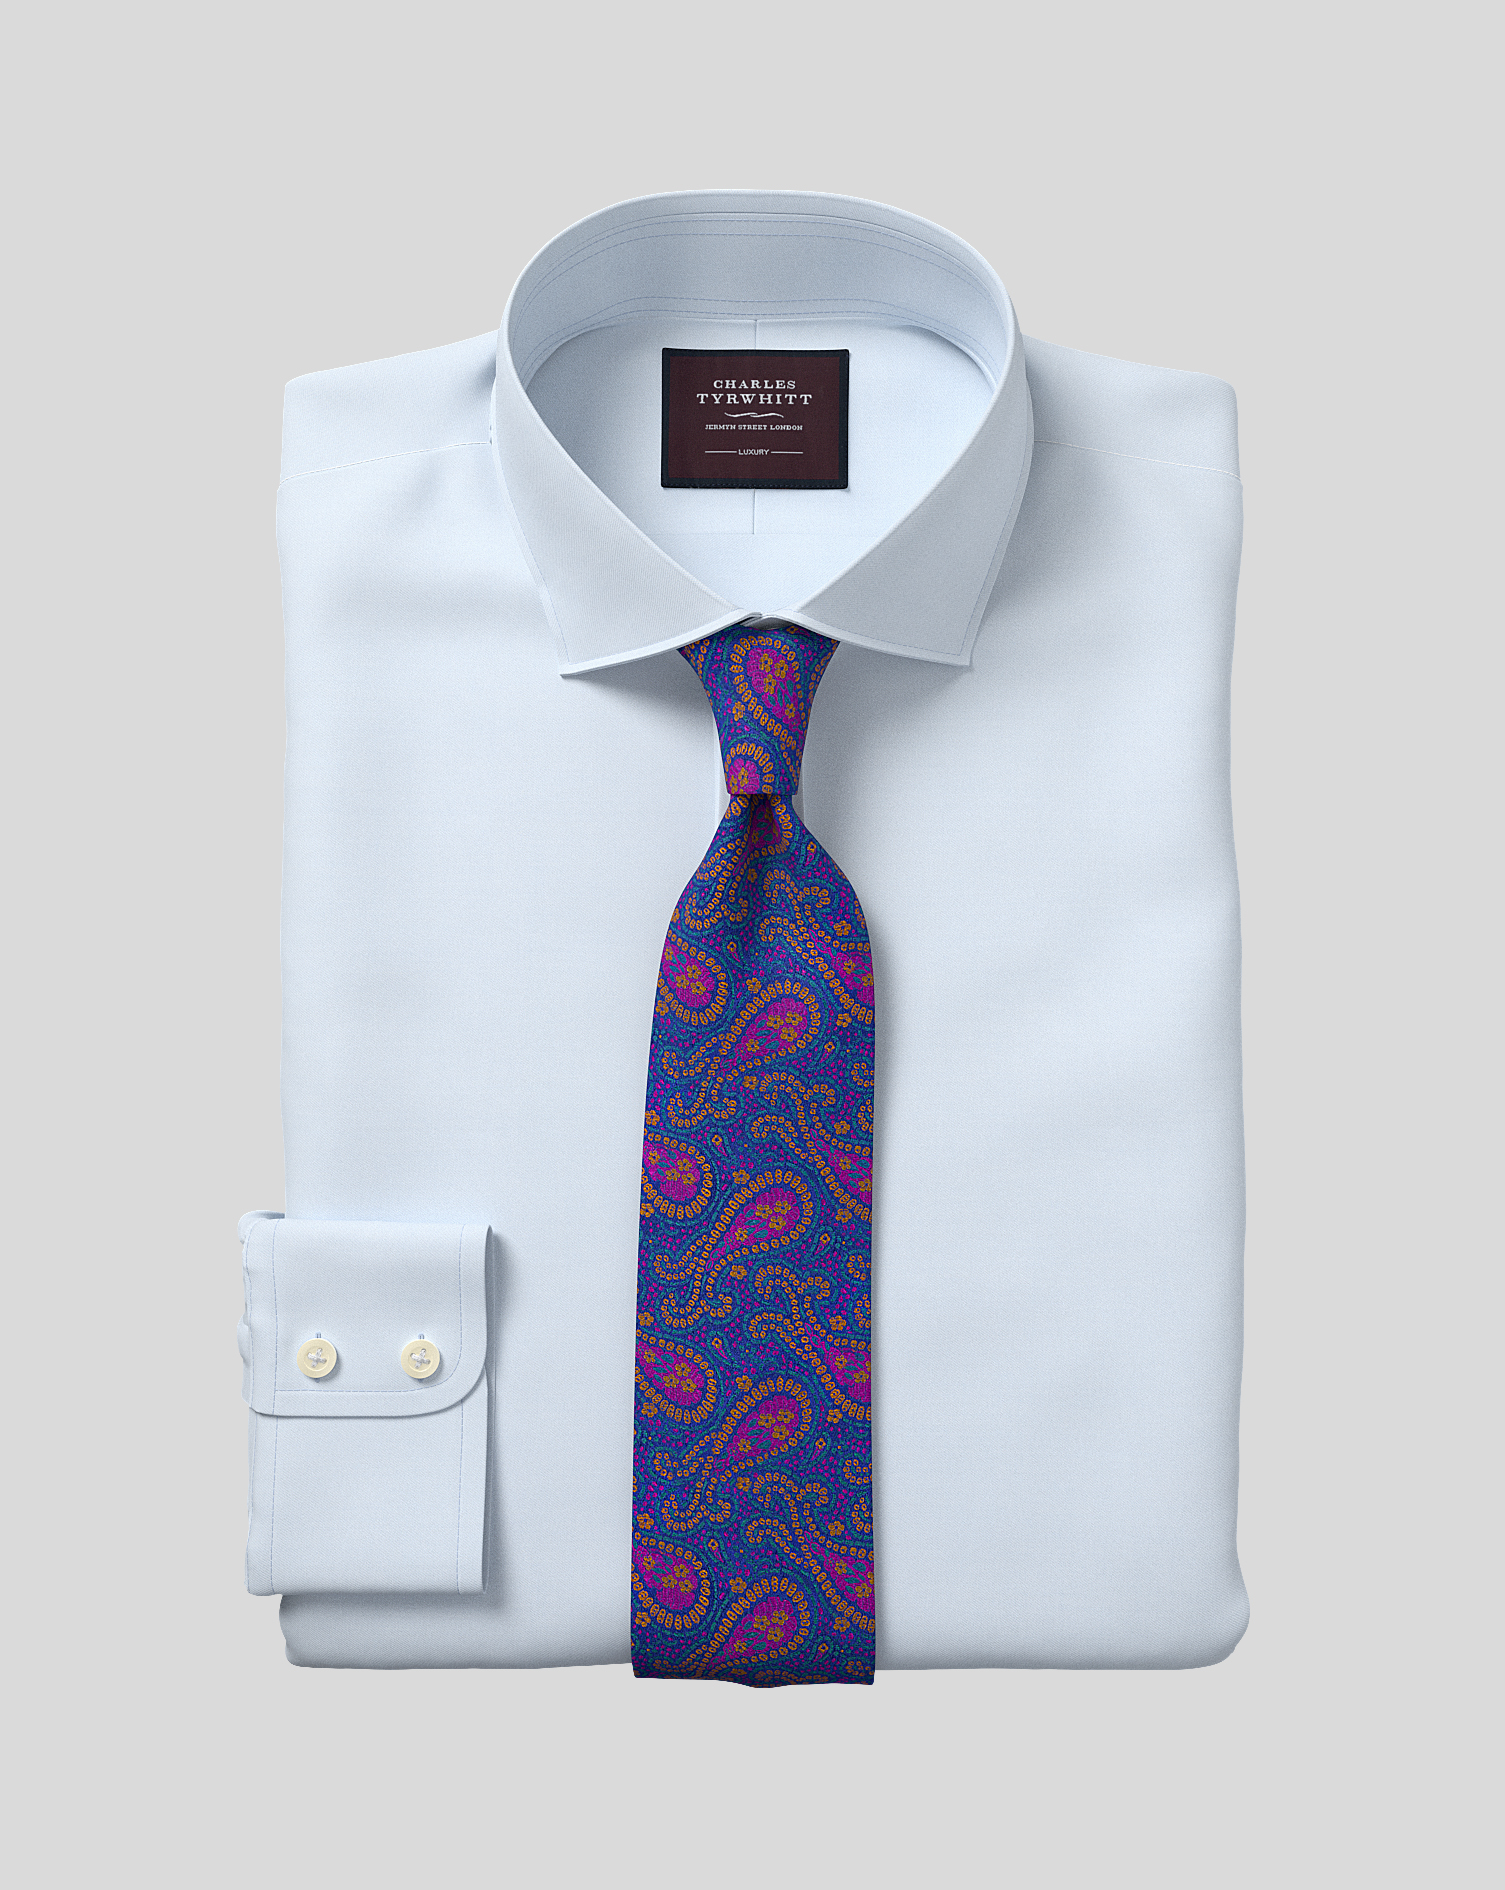 Slim Fit Sky Blue Luxury Twill Egyptian Cotton Formal Shirt Double Cuff Size 17/35 by Charles Tyrwhi